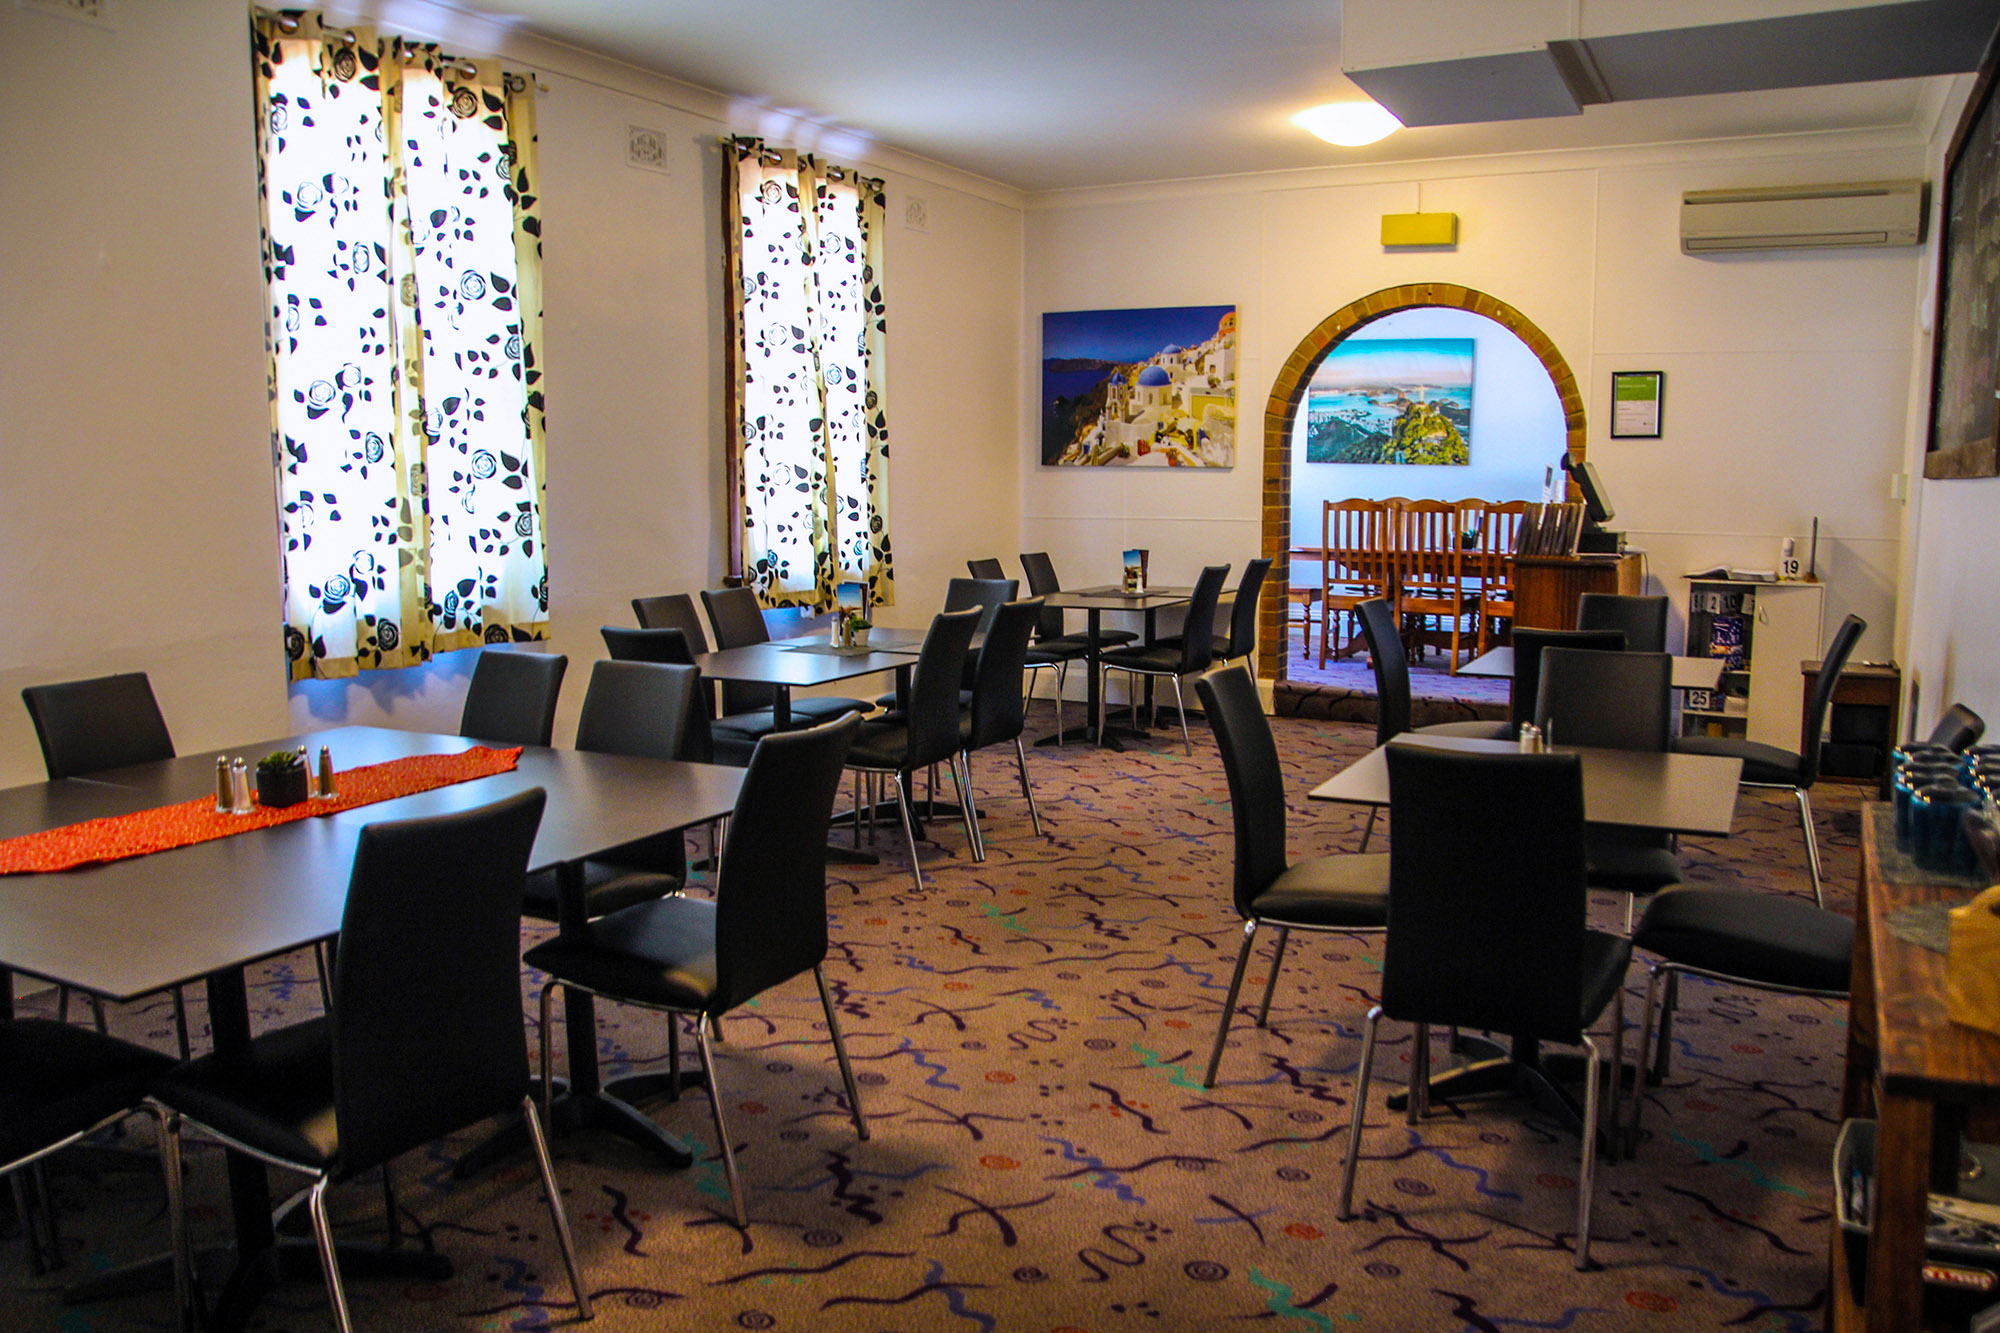 Name : The Court House Hotel – Boorowa